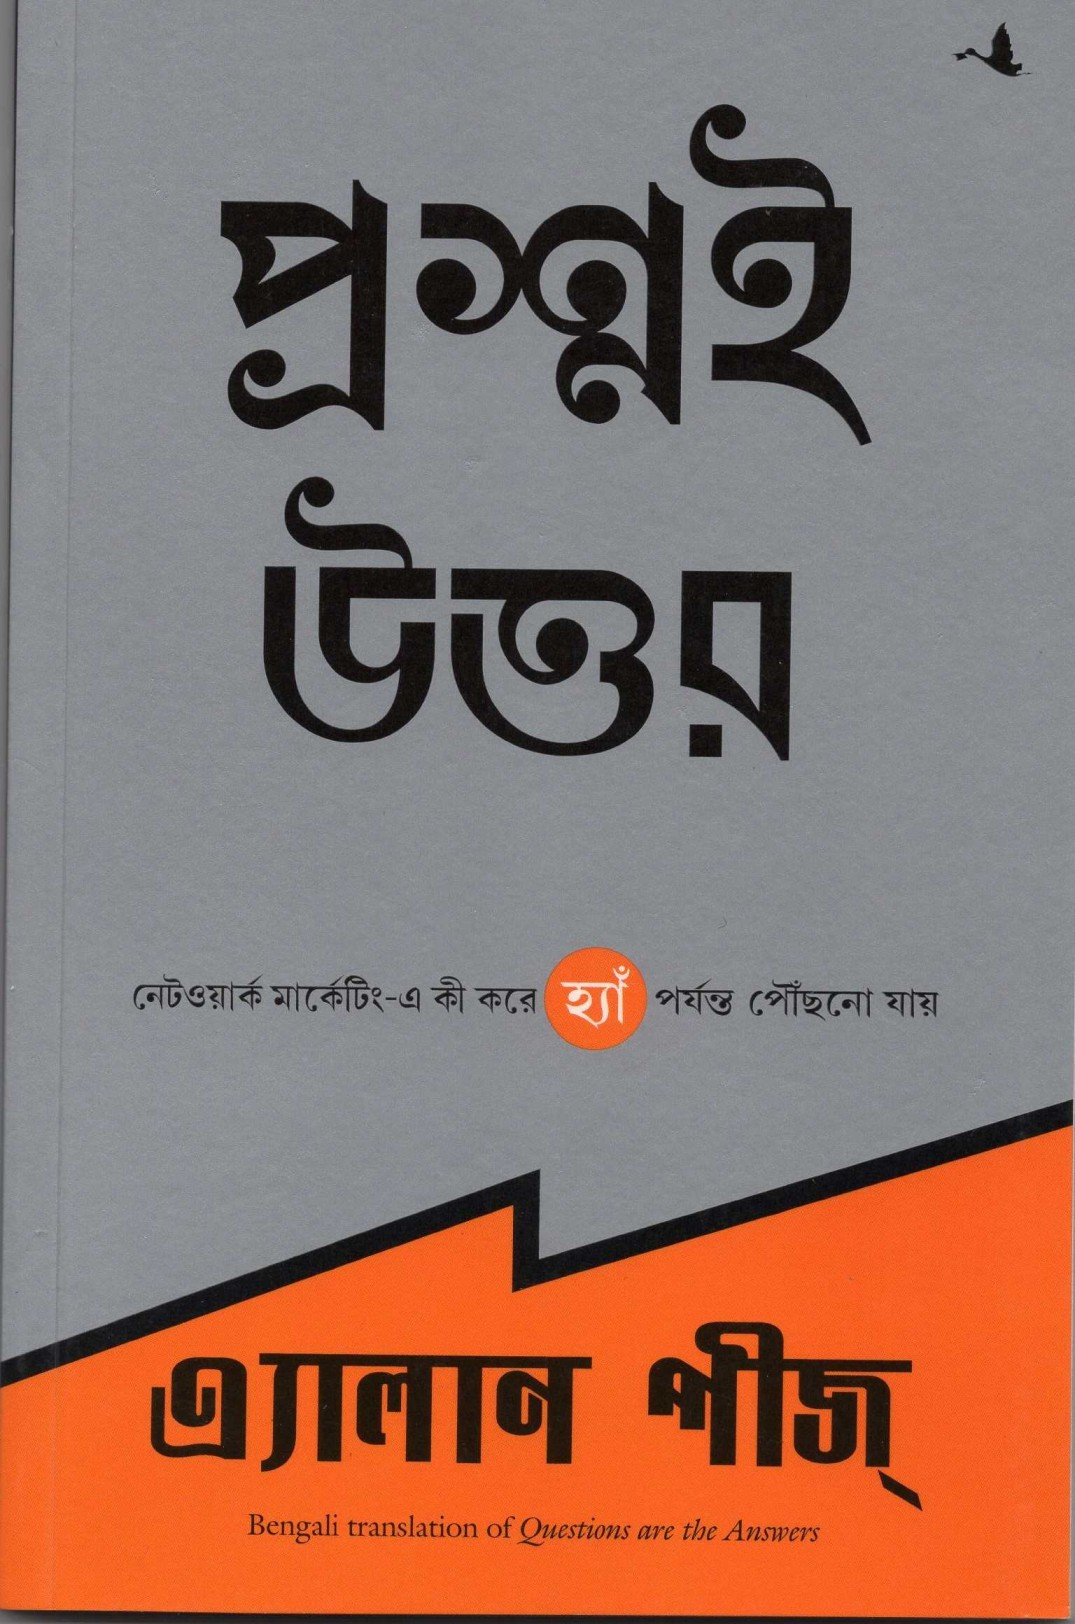 QUESTIONS ARE THE ANSWER (BENGALI)